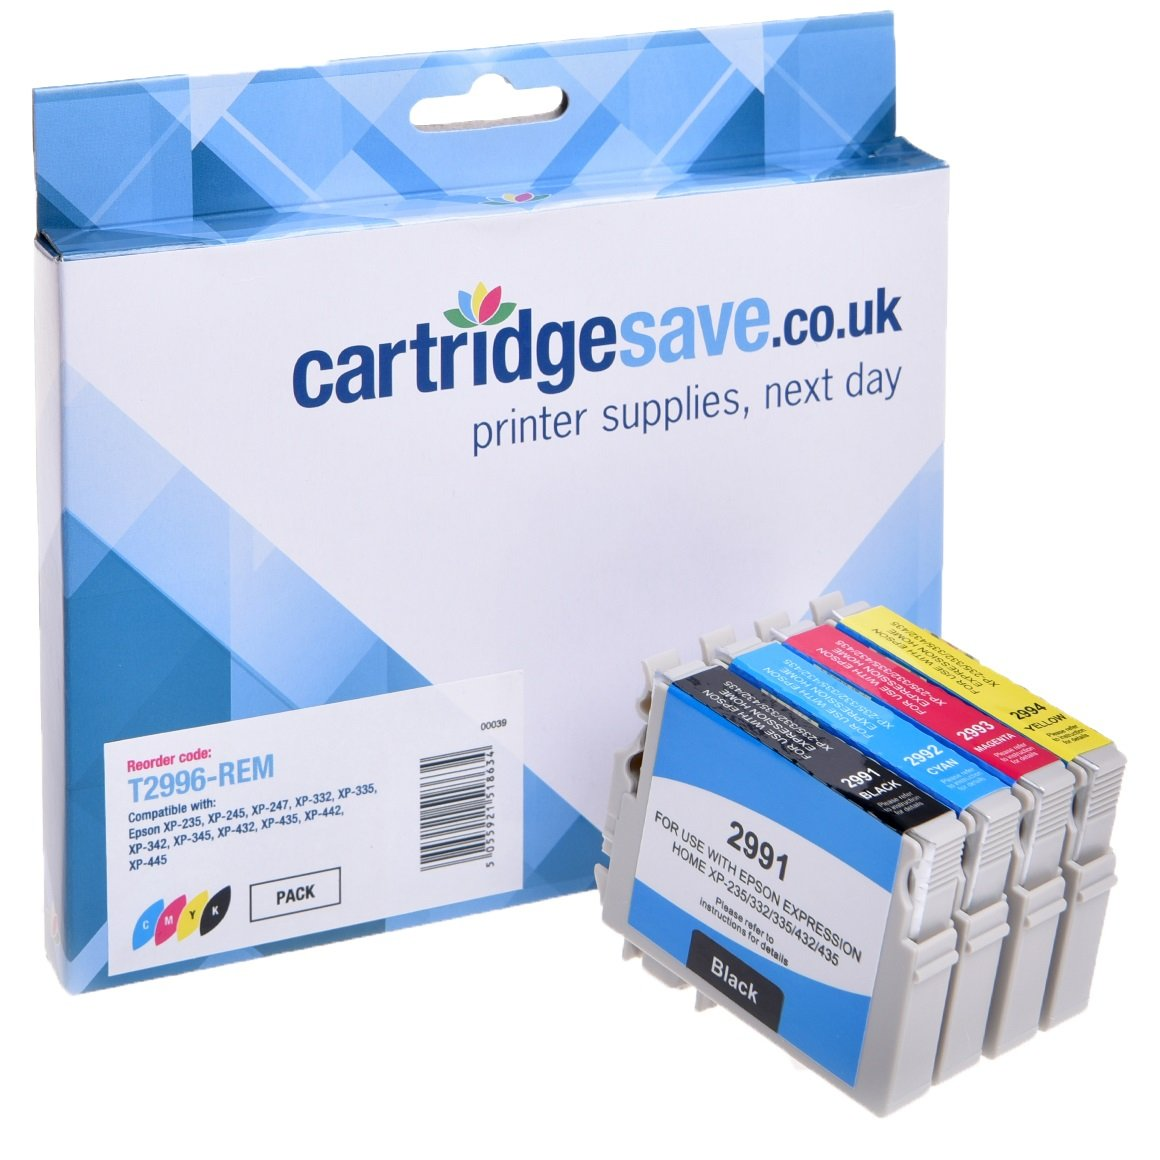 Compatible 4 Colour Epson 29XL High Capacity Ink Cartridge Multipack - (Replaces Epson T2996 Strawberry Inkjet Printer Cartridges)